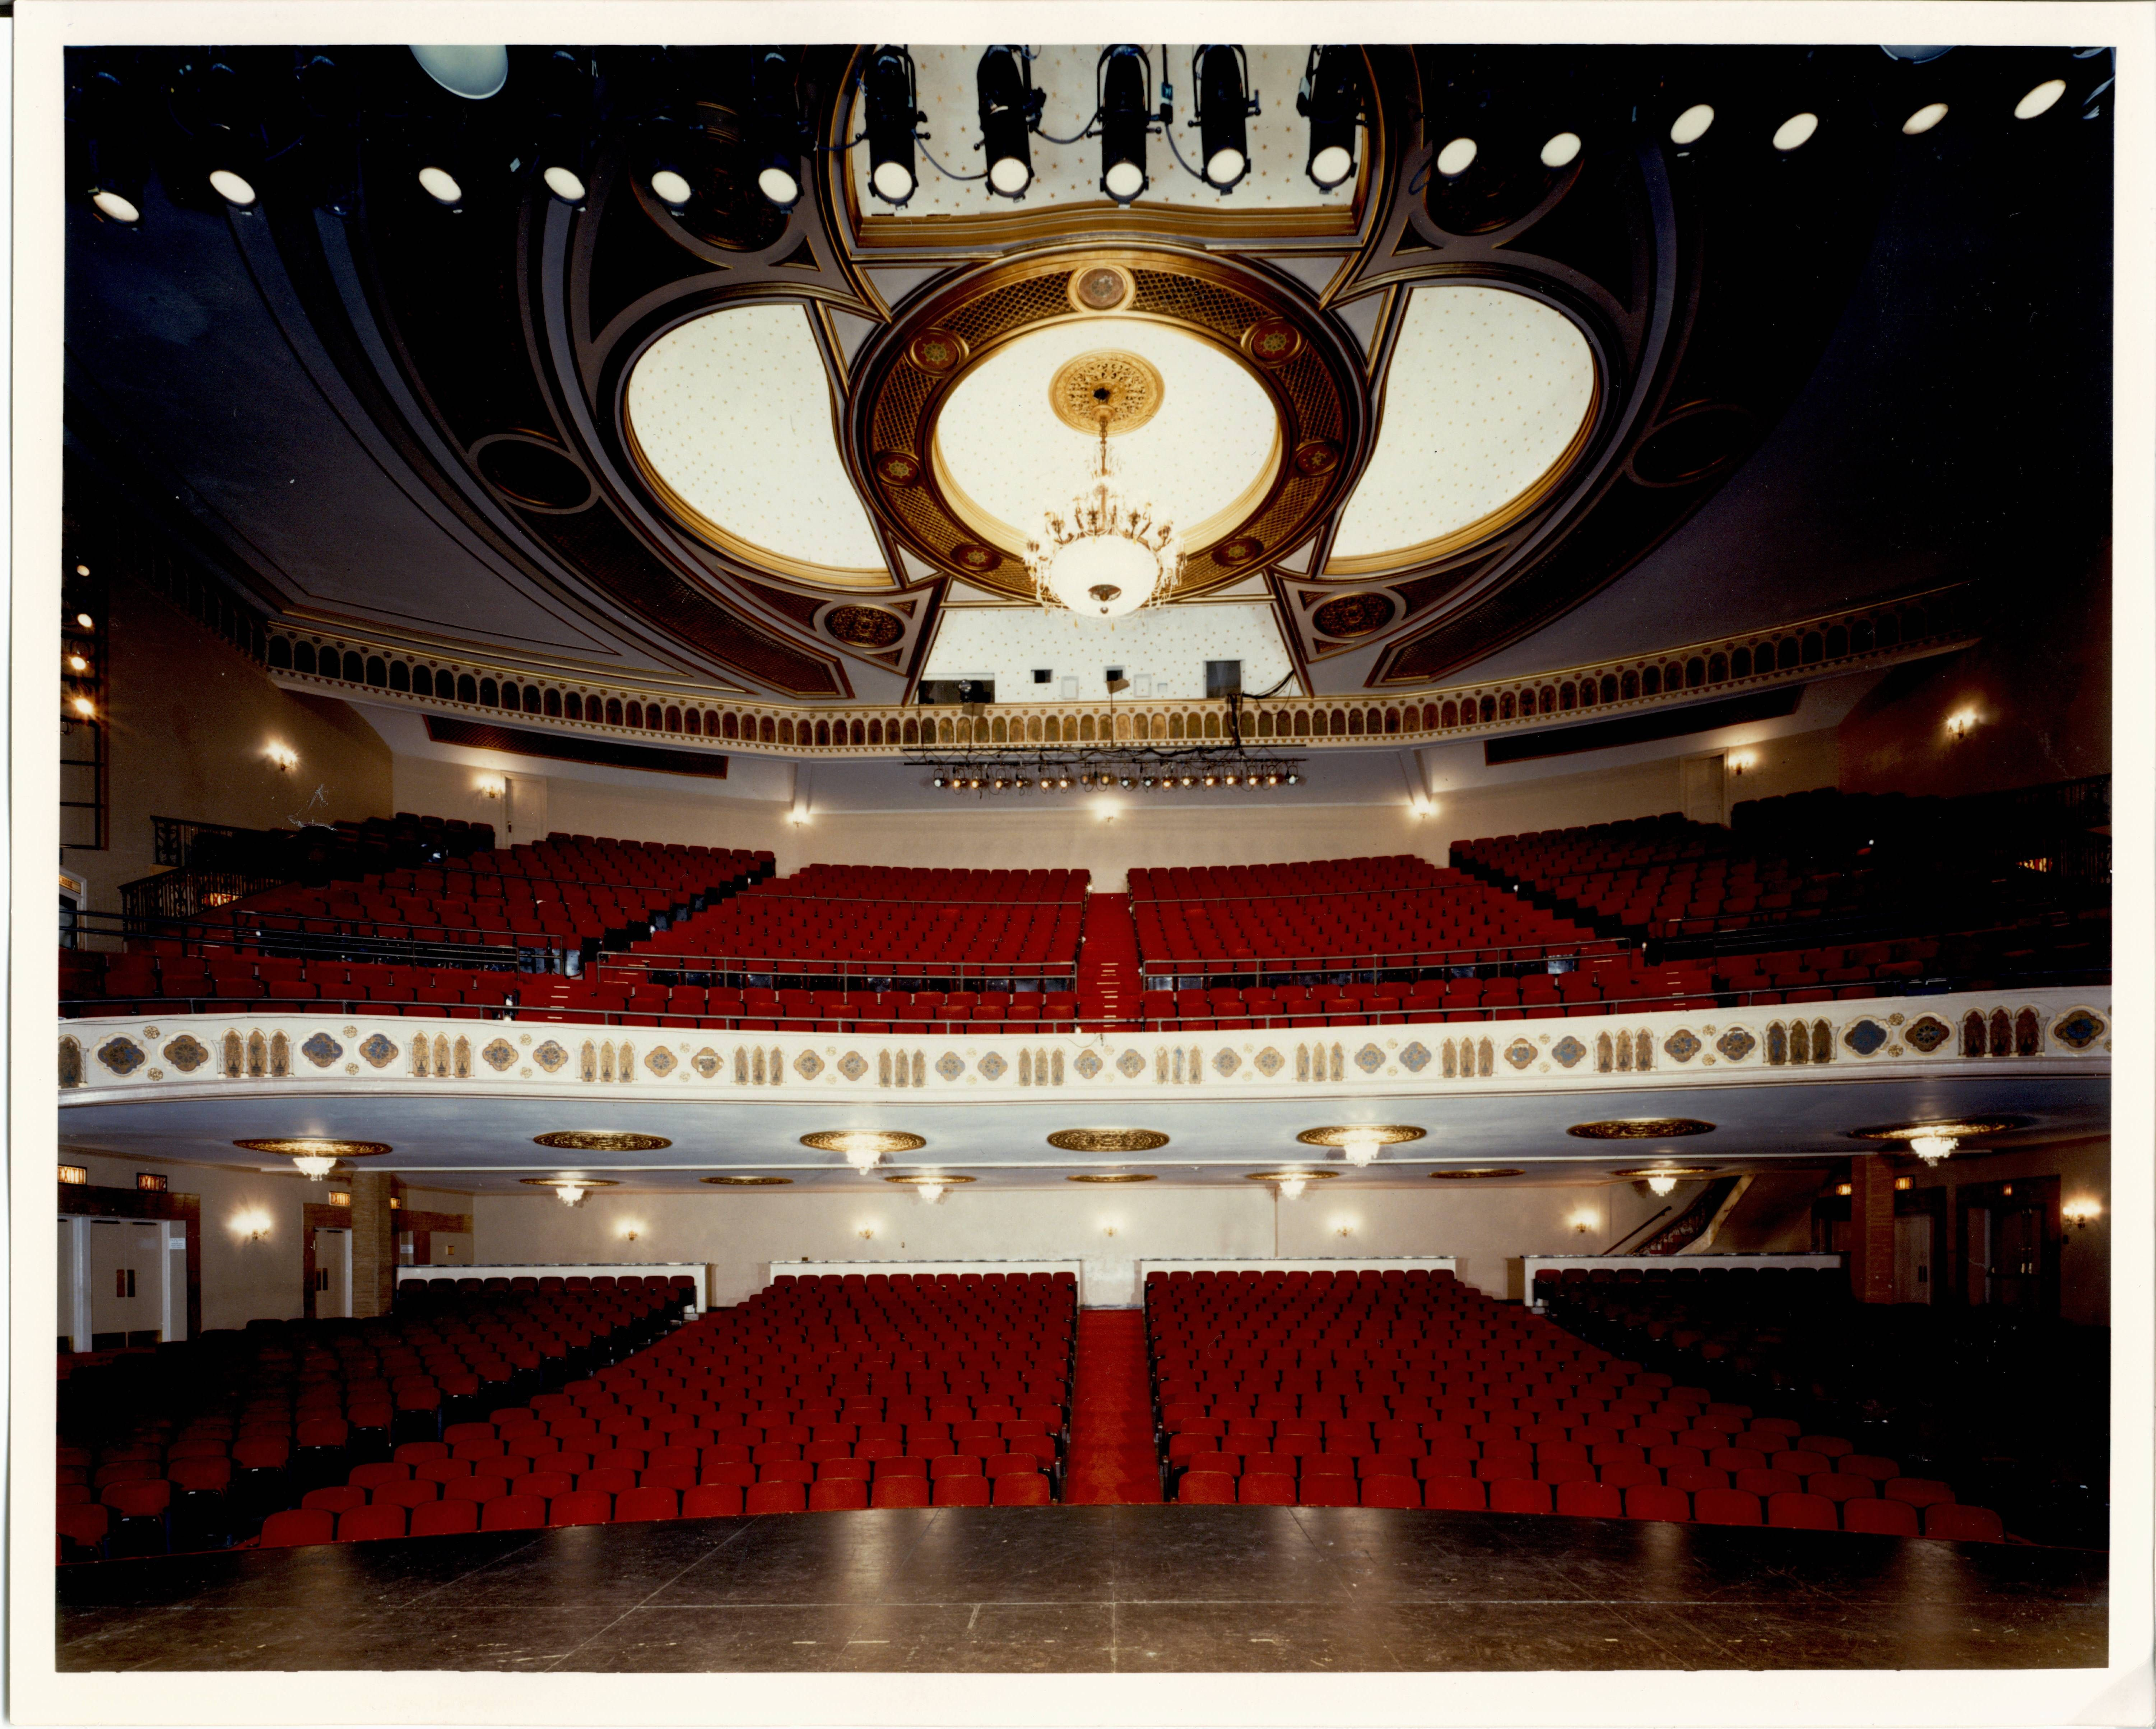 A view of the Main Auditorium from The Harman Stage Capacity seats The Palace Theatre Stamford